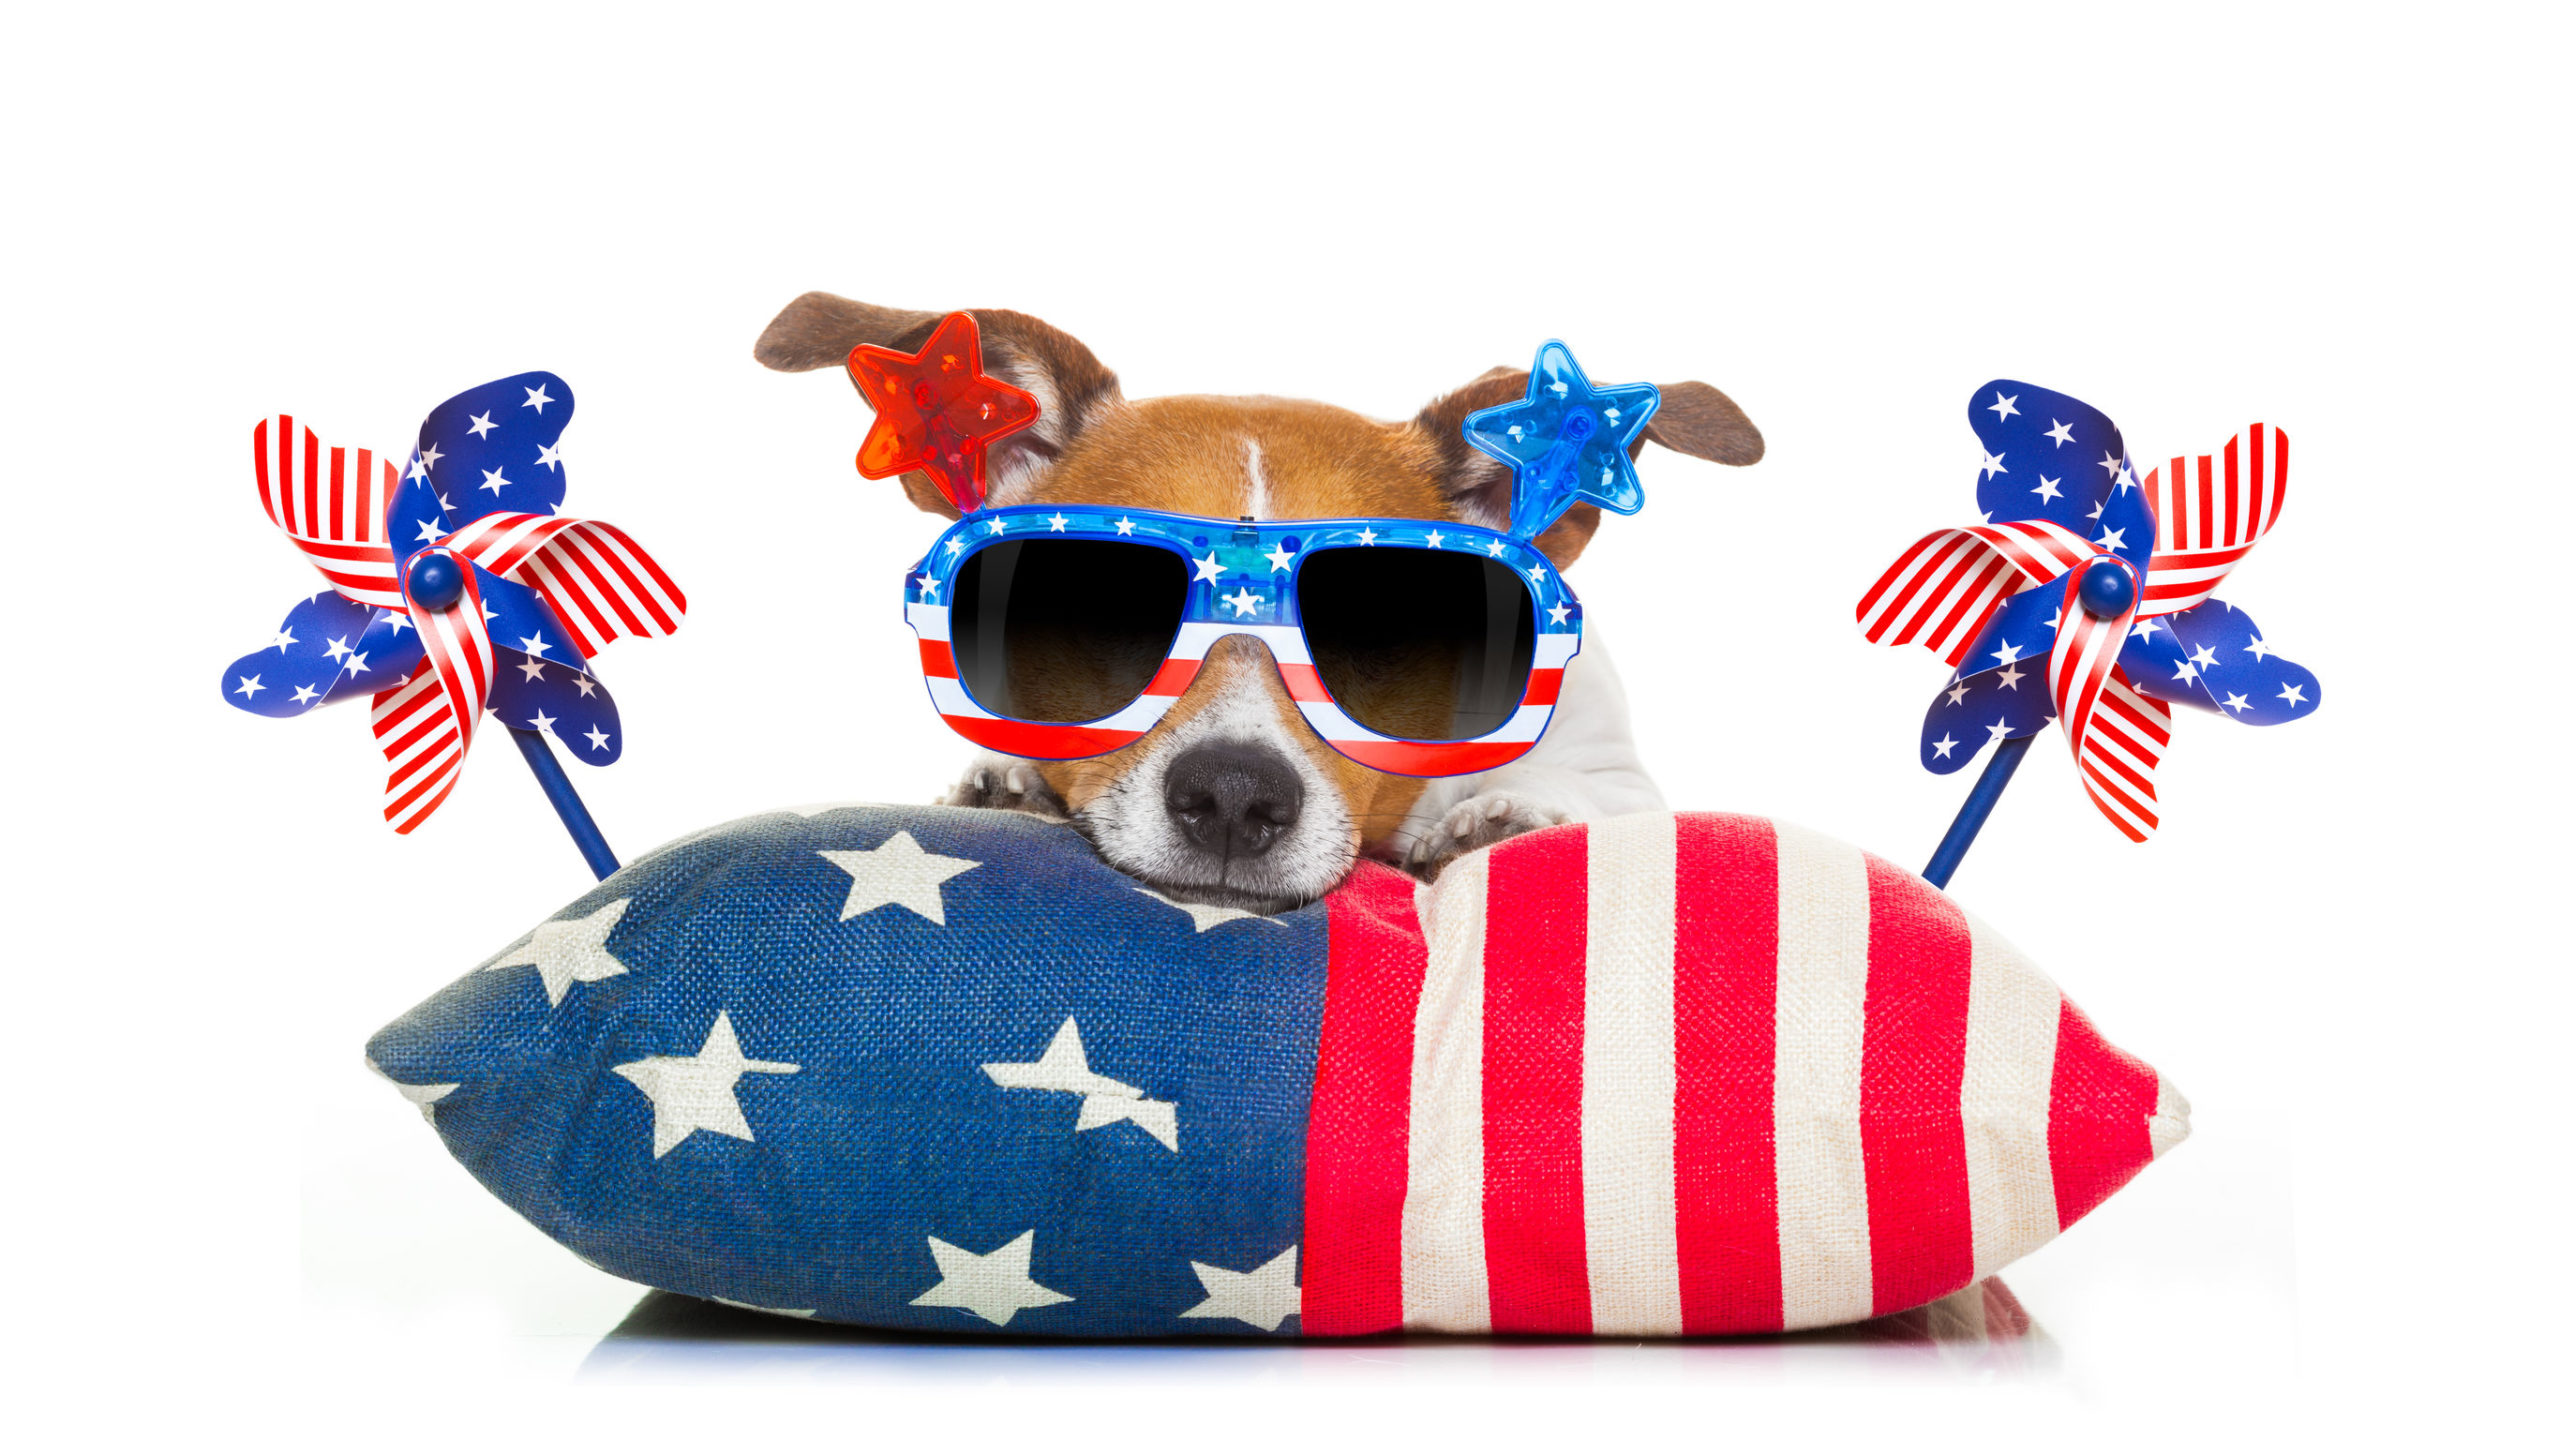 4th of July email templates, email lists, and email marketing campaigns: COVERED.